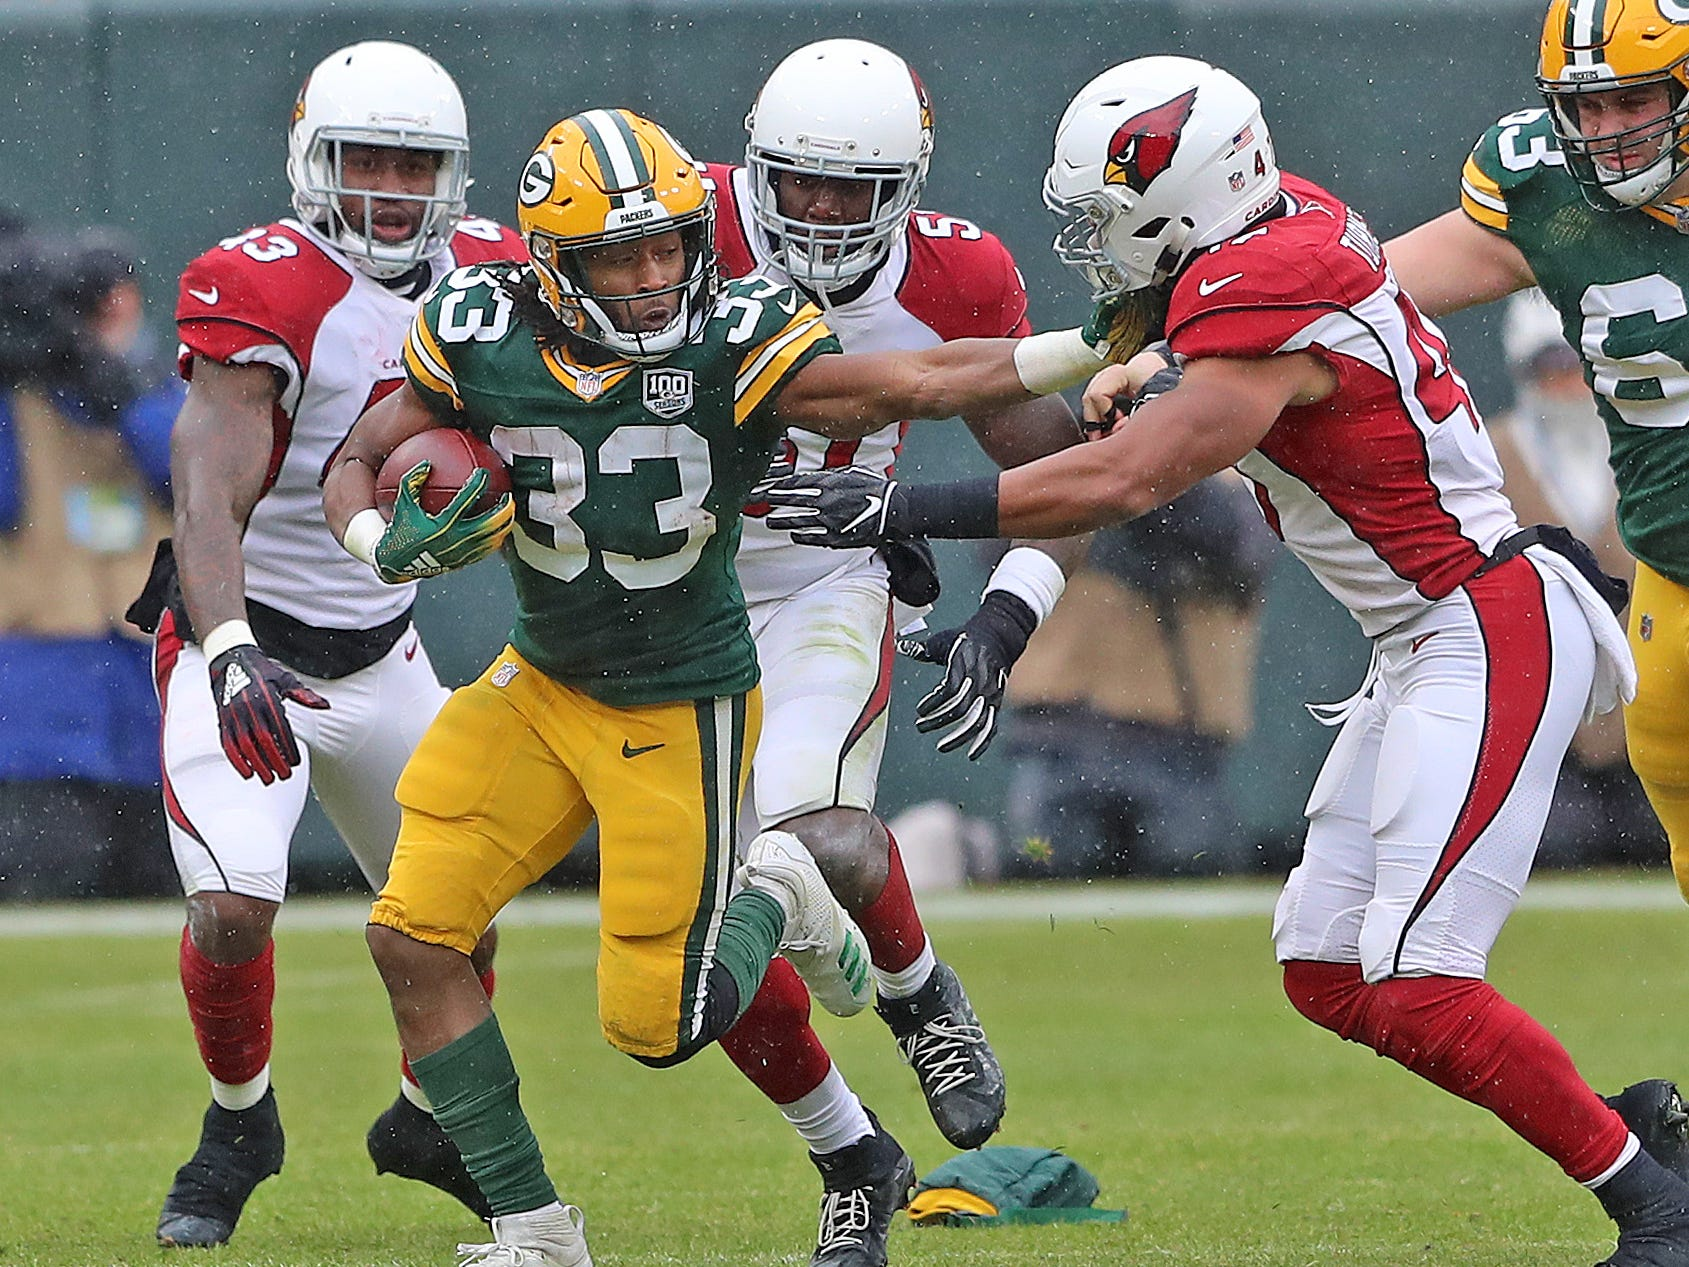 Green Bay Packers running back Aaron Jones (33) runs away from the defense against the Arizona Cardinals Sunday, December 2, 2018 at Lambeau Field in Green Bay, Wis. Jim Matthews/USA TODAY NETWORK-Wis